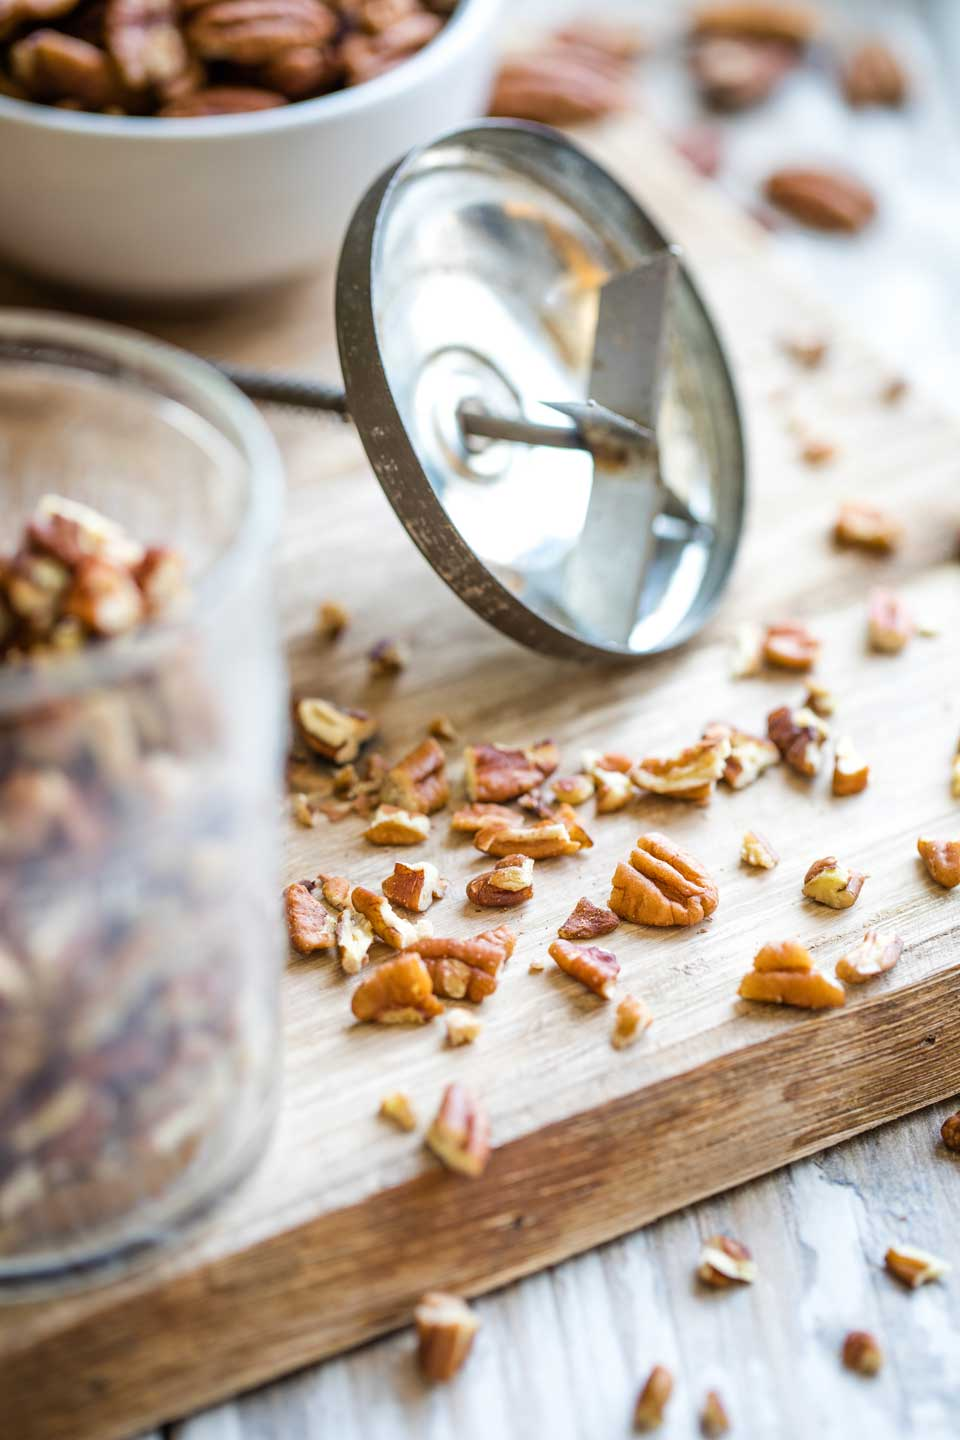 chopped pecans scattered on a cutting board with my Grandmother's antique nut chopper laying alongside